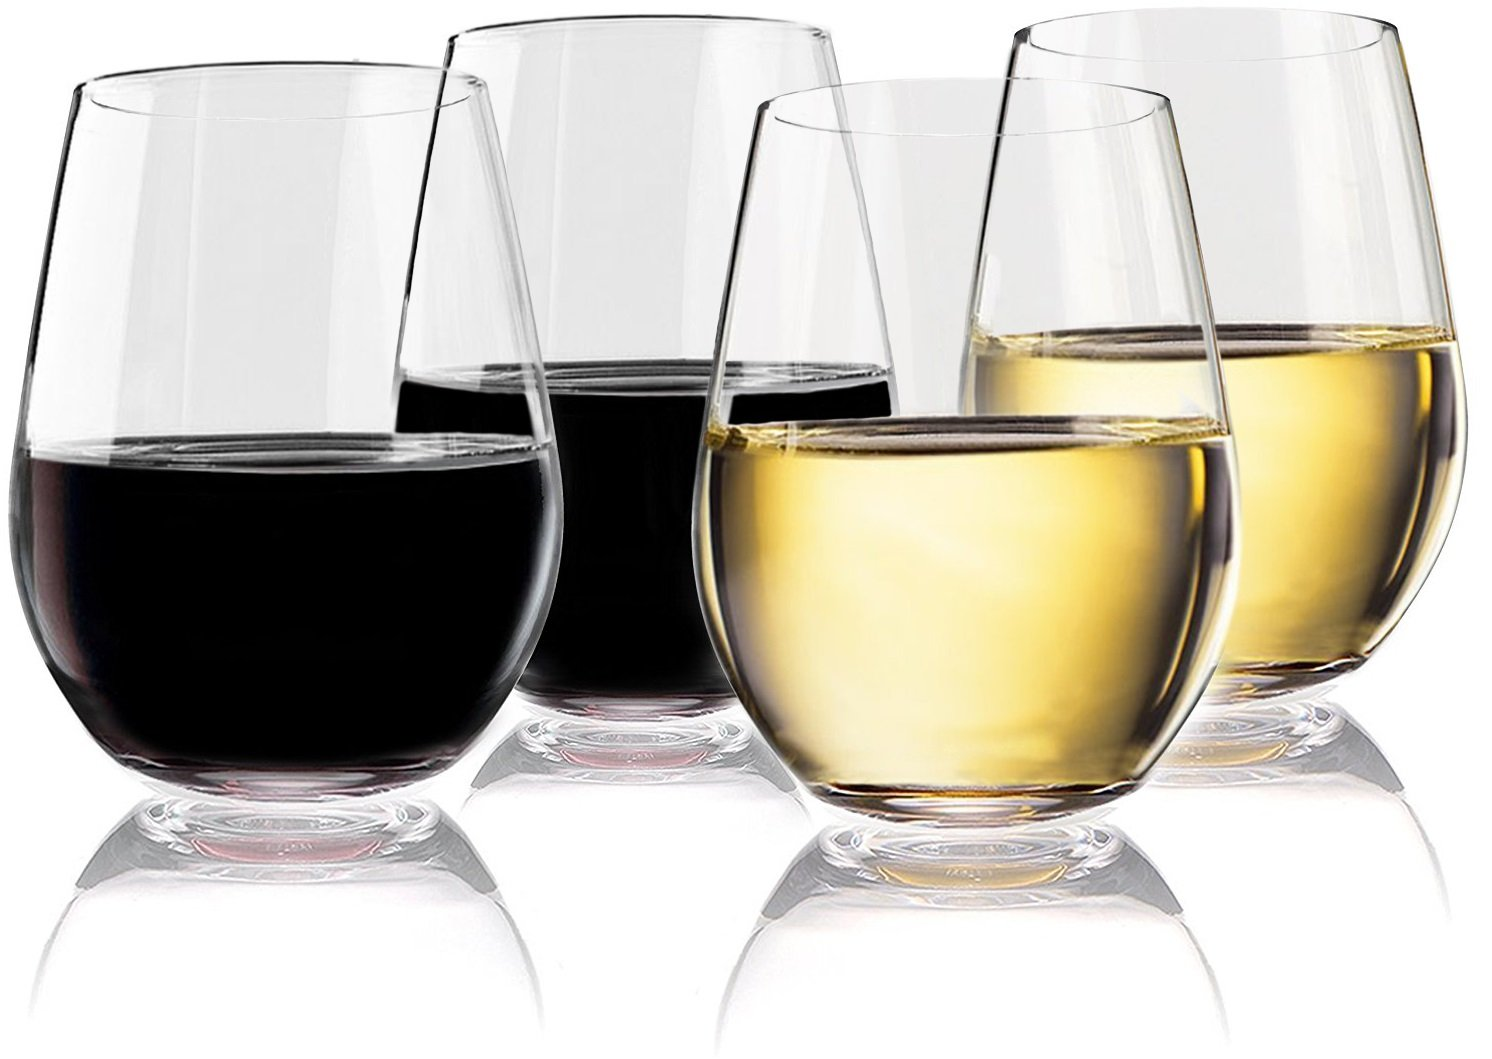 Vivocci Unbreakable Elegant Plastic Stemless Wine Glasses 20 oz | 100% Tritan Heavy Base | Shatterproof Glassware | Ideal For Cocktails & Scotch | Perfect For Homes & Bars | Dishwasher Safe | Set of 4 by Vivocci